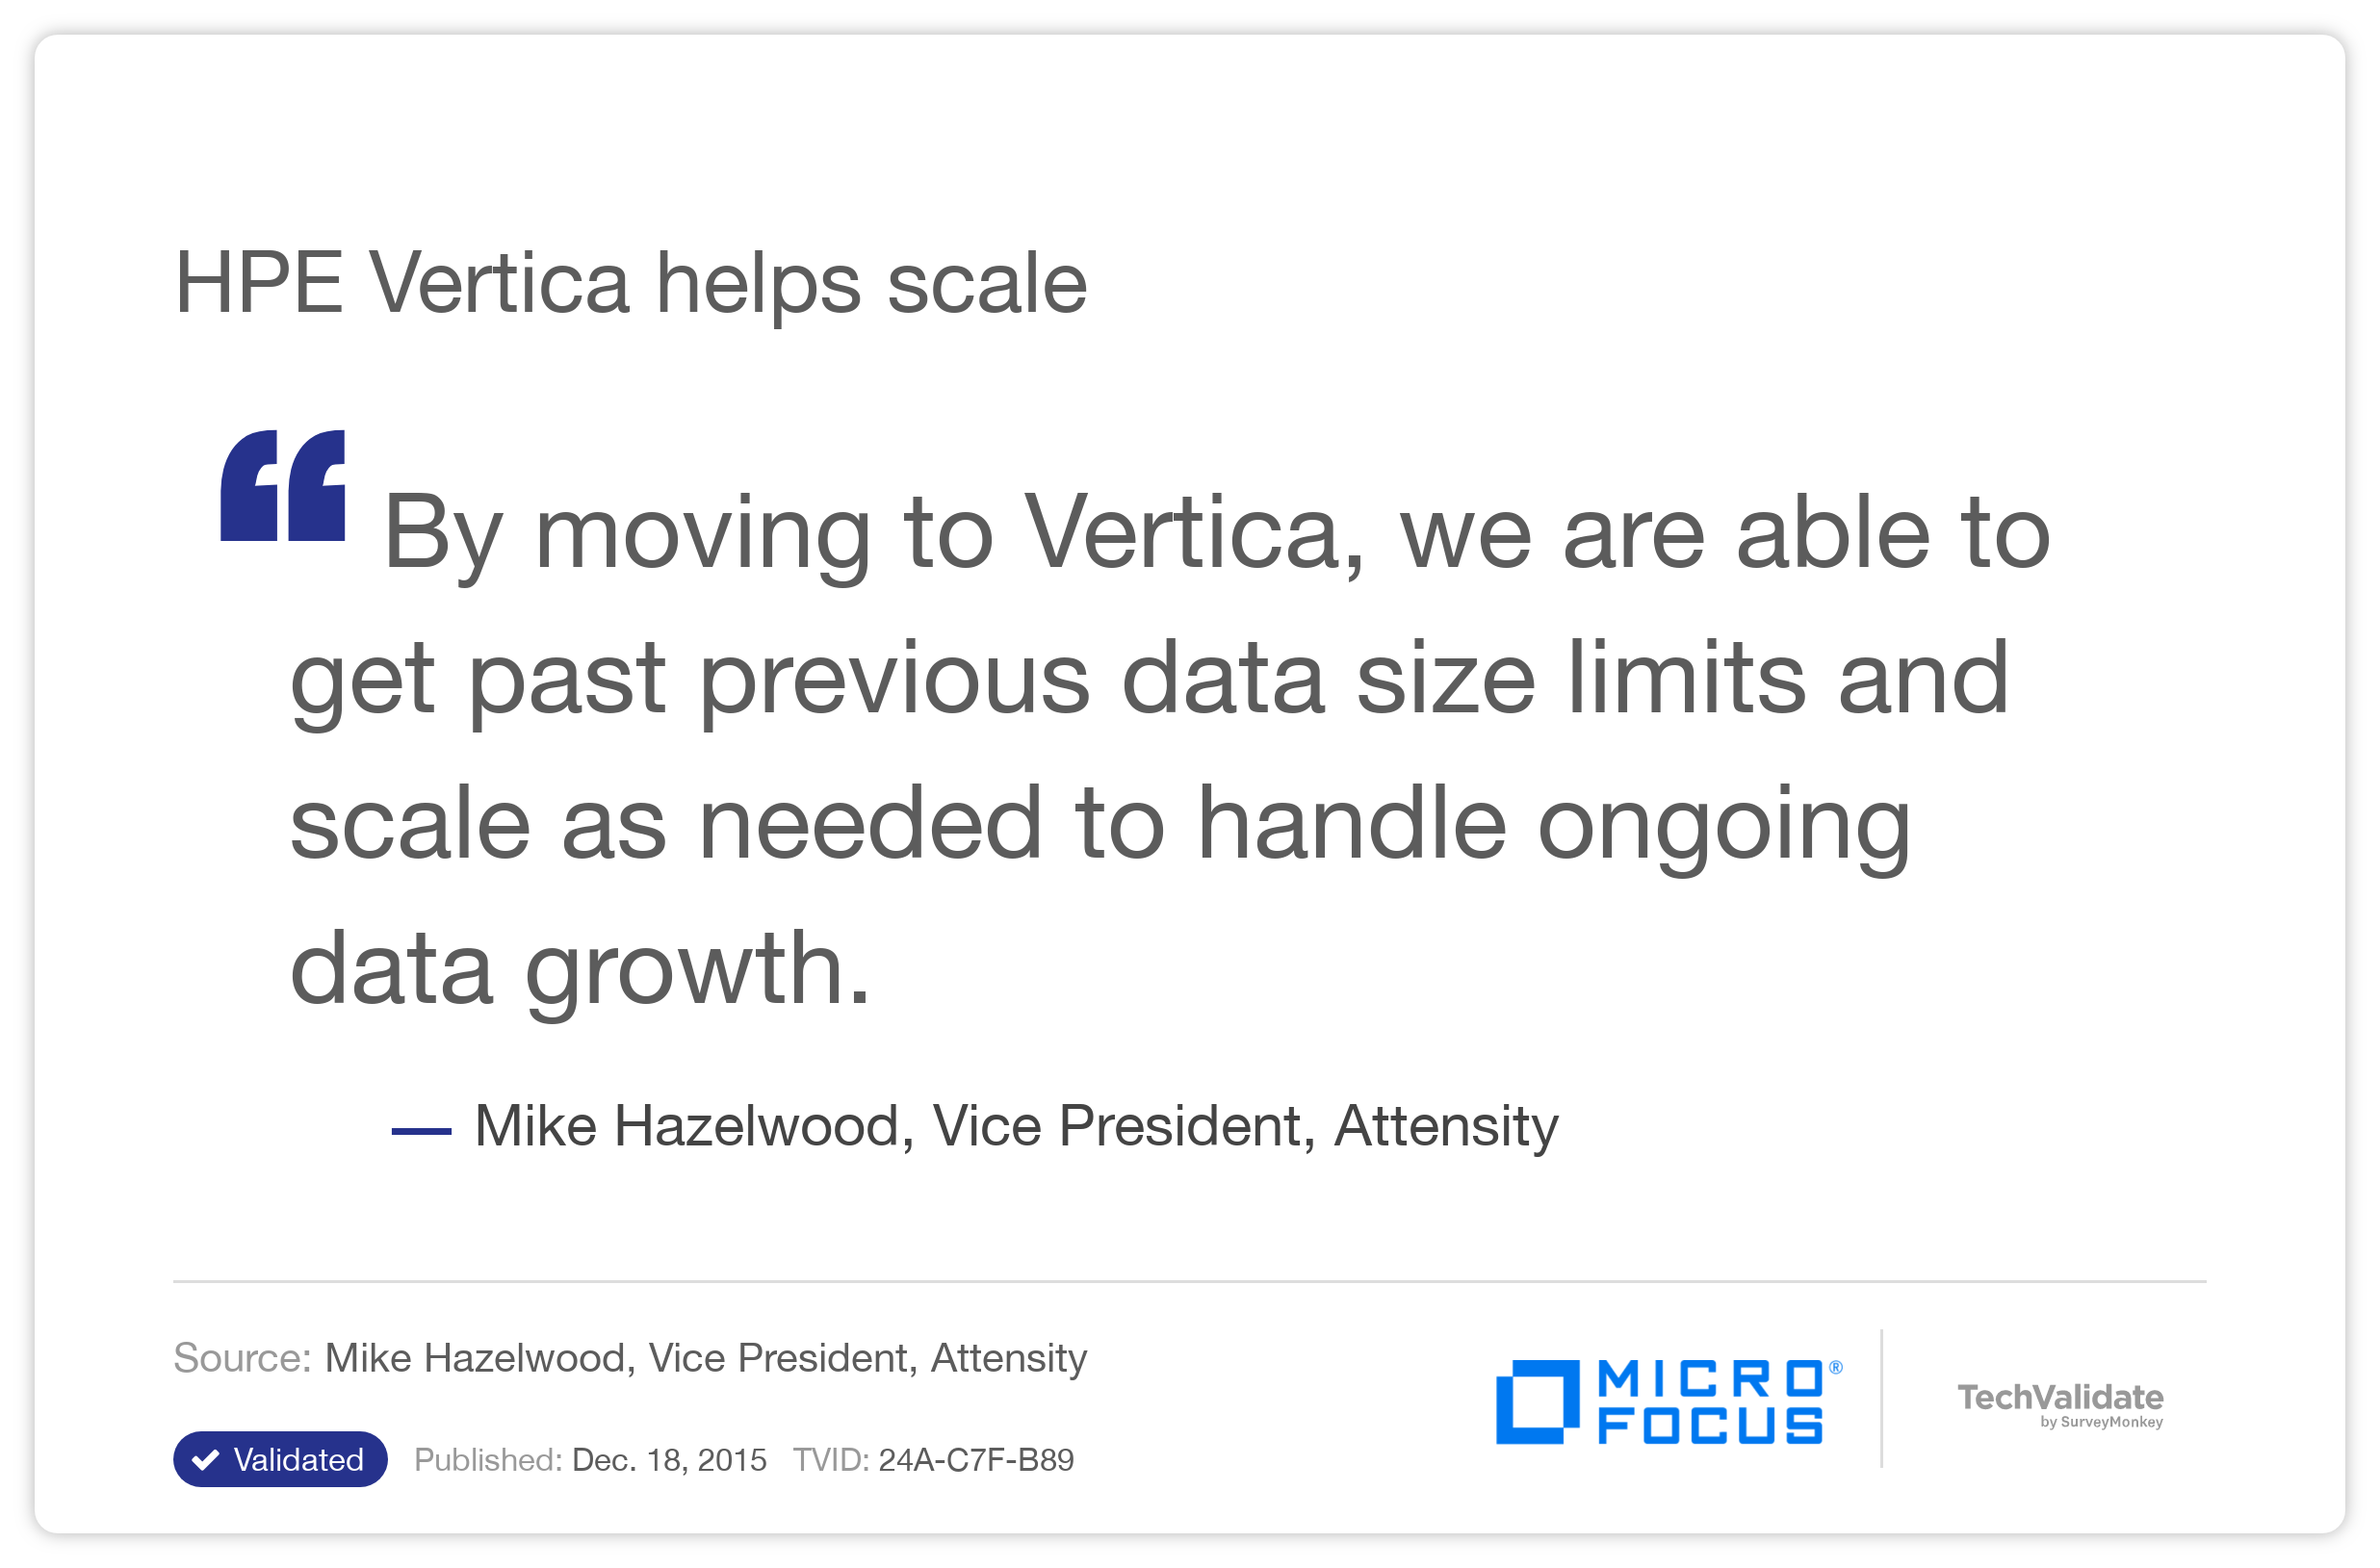 HPE Vertica helps scale